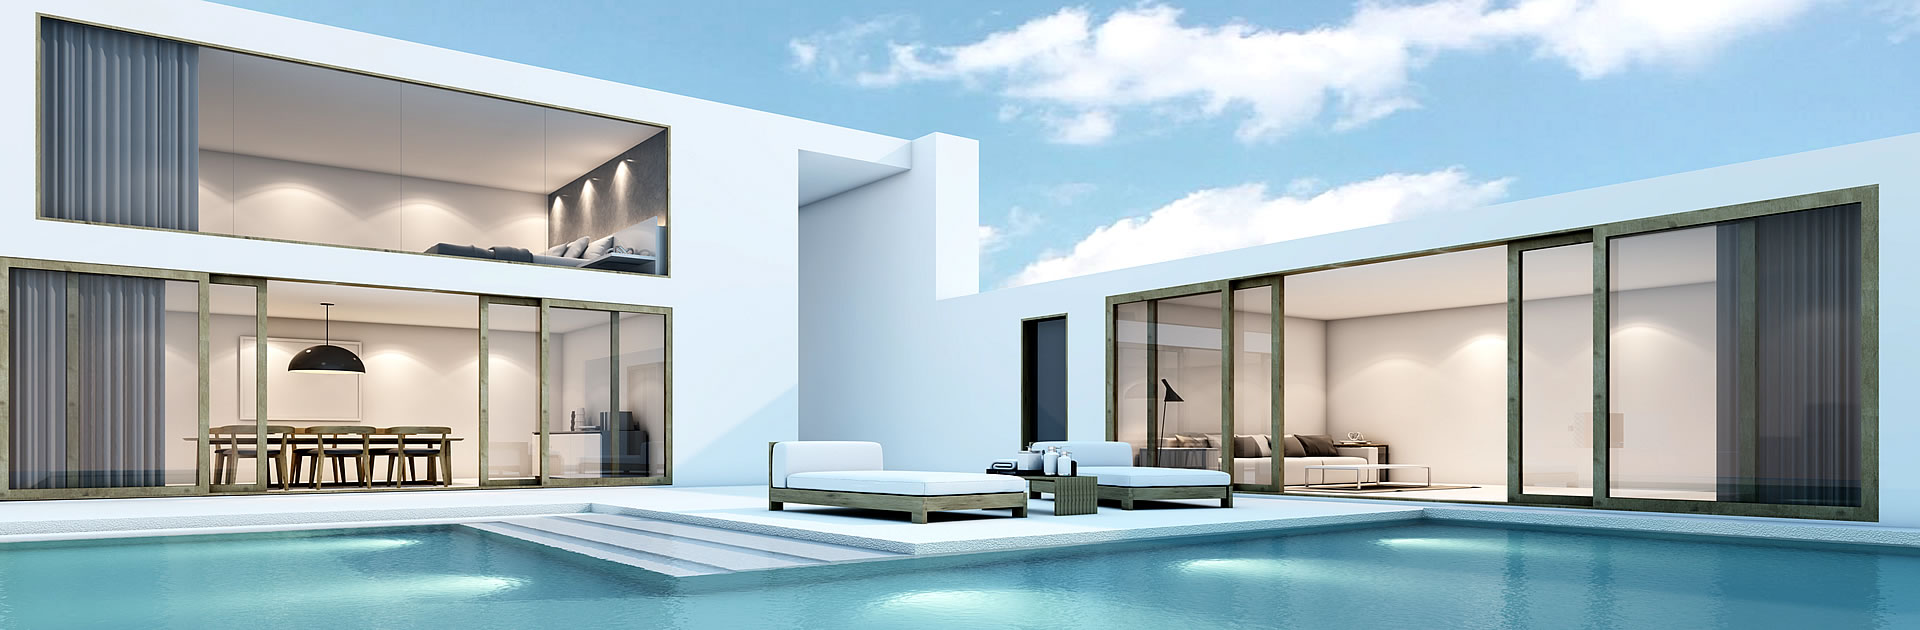 ANTIBES SUD IMMOBILIER